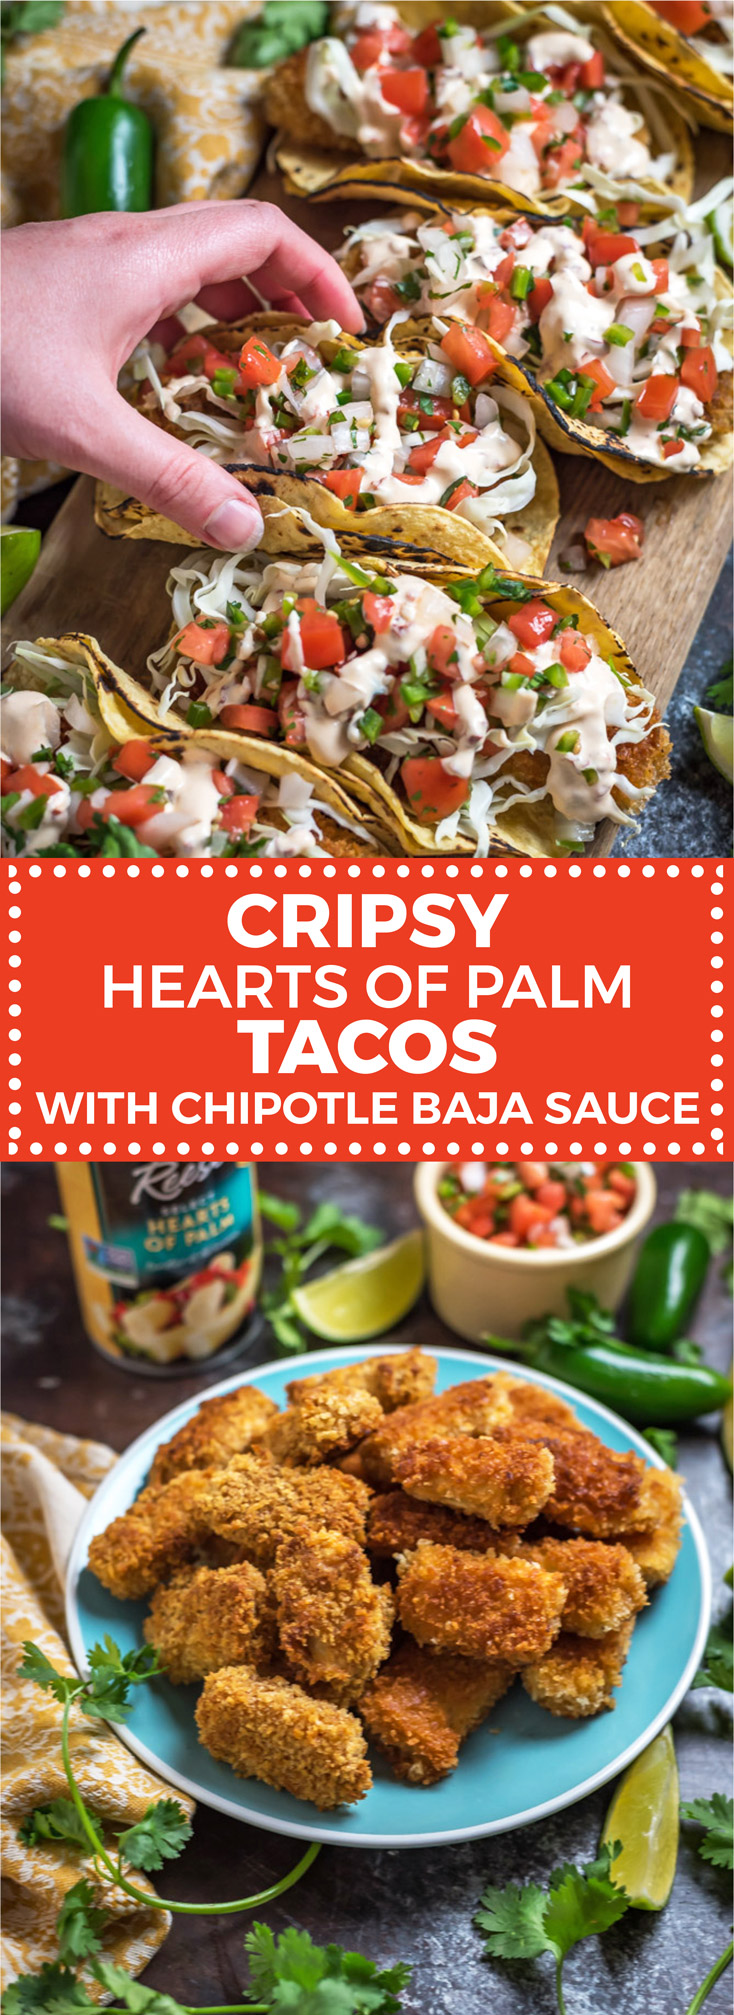 Crispy Hearts of Palm Tacos with Chipotle Baja Sauce. Have you ever tried hearts of palm in a taco before? They're flavorful, tender on the inside and crisp on the outside, easy to make, vegetarian and vegan friendly, and they taste *fantastic*. Check out the recipe and how-to video! | hostthetoast.com